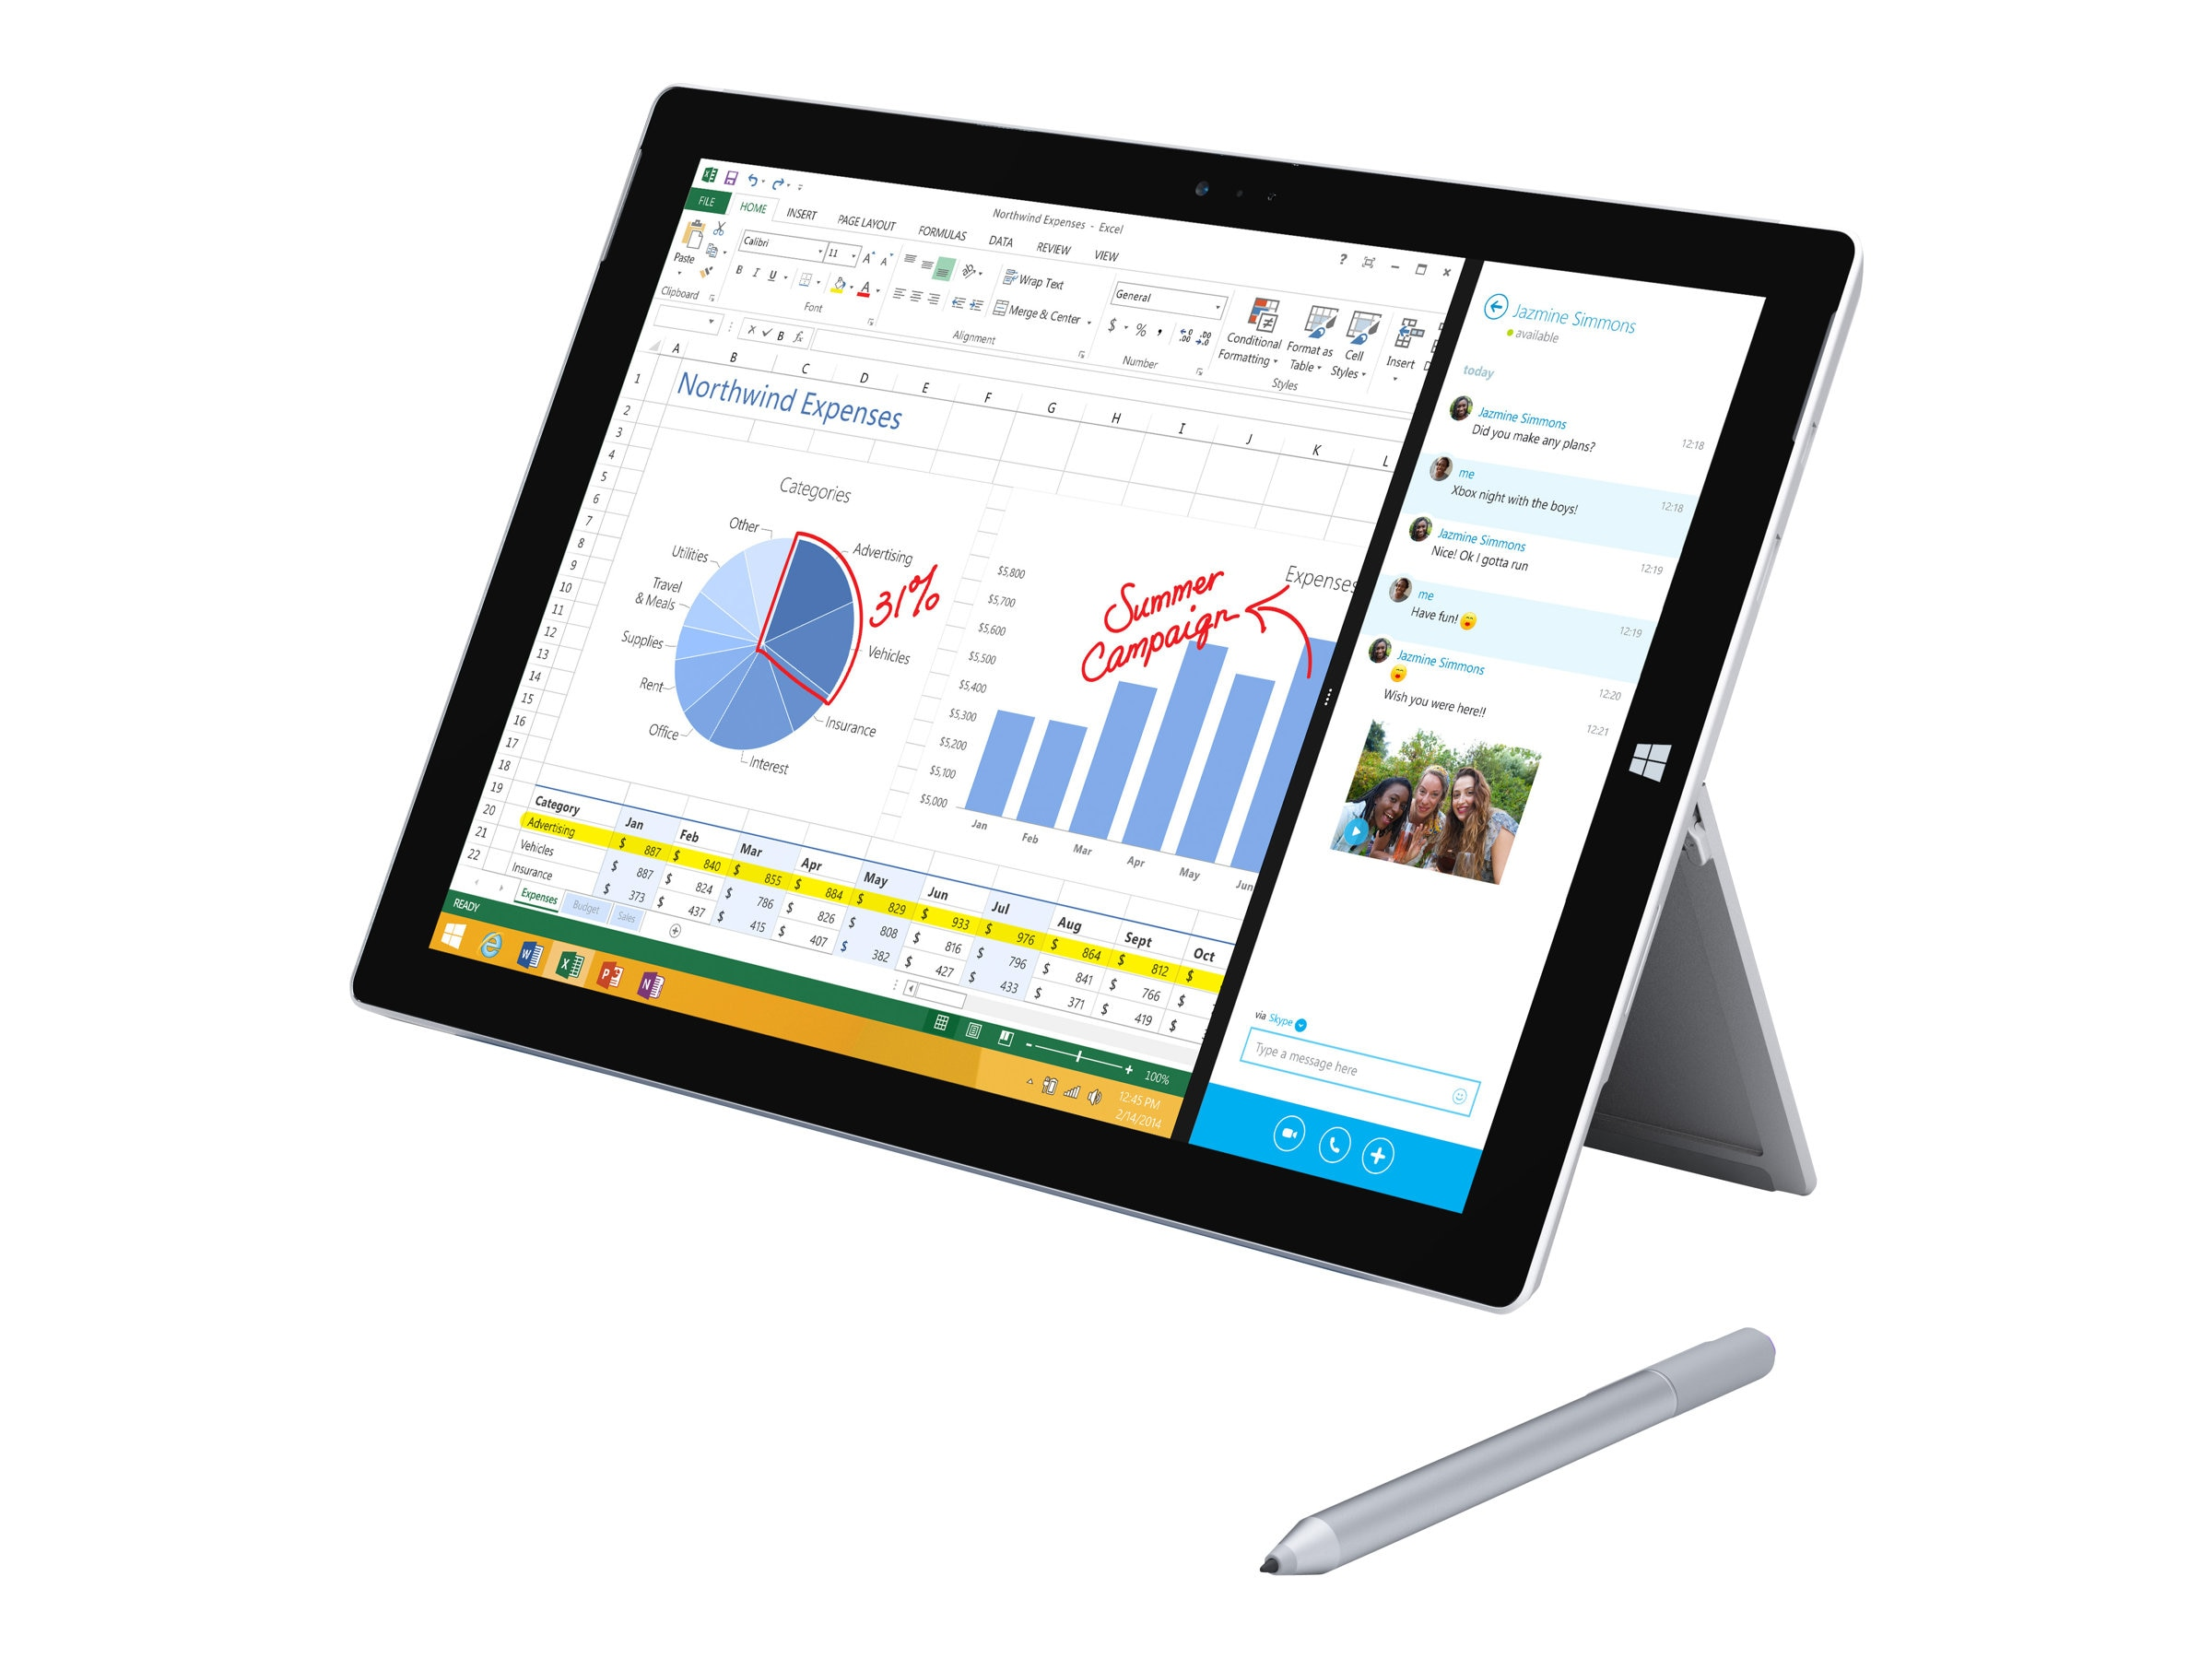 Scratch & Dent Microsoft Surface Pro 3 Tablet Core i5 8GB 256GB acabgn BT 2xWC 12 FHD+ MT W8.1P, QG2-00001